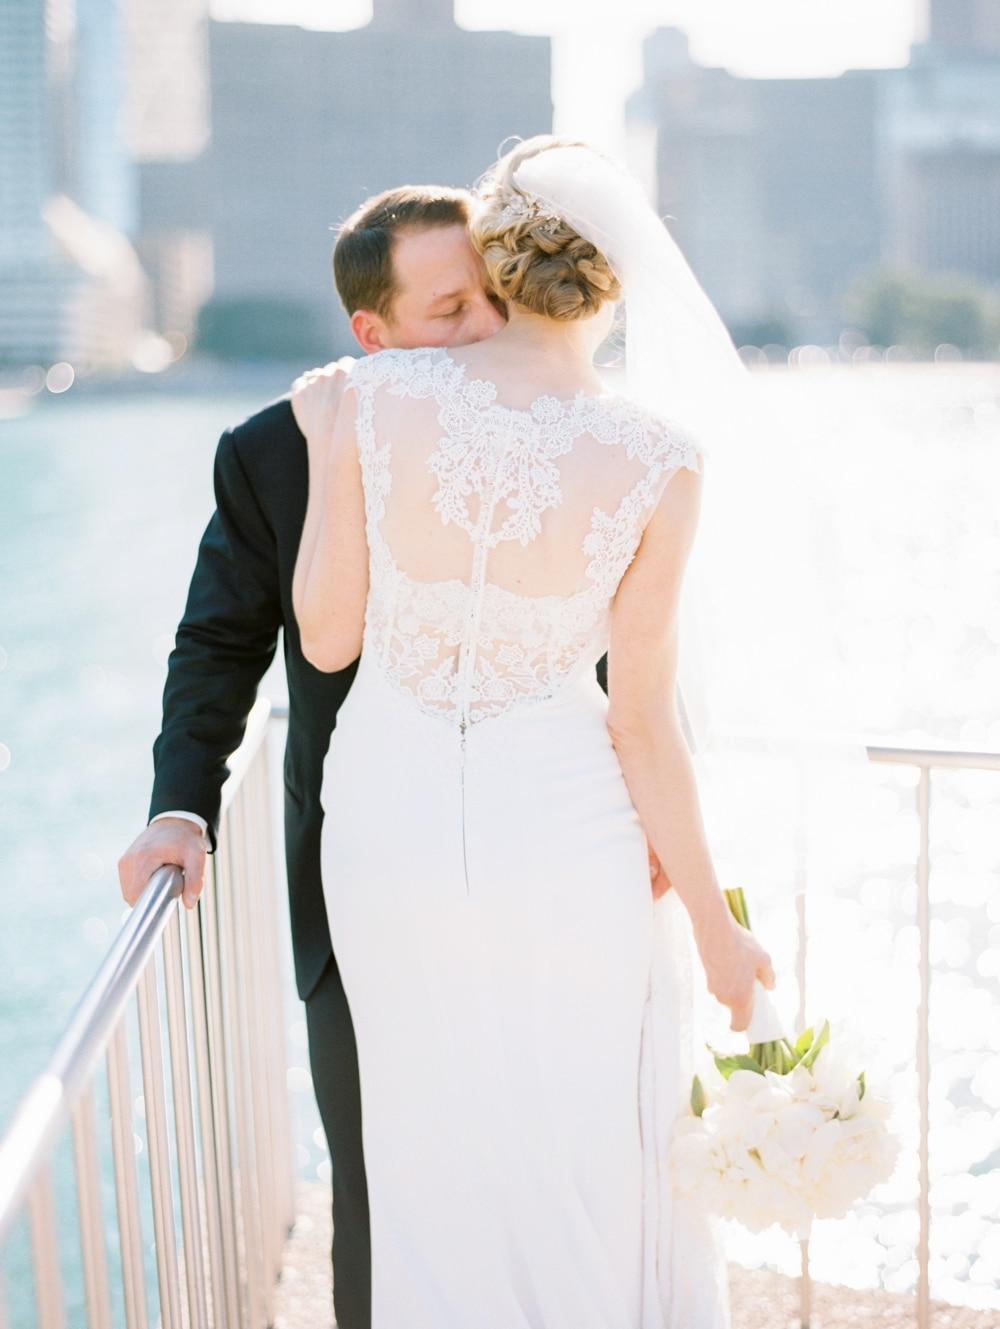 kristin-la-voie-photography-Chicago-Peninsula-Wedding-photographer-84